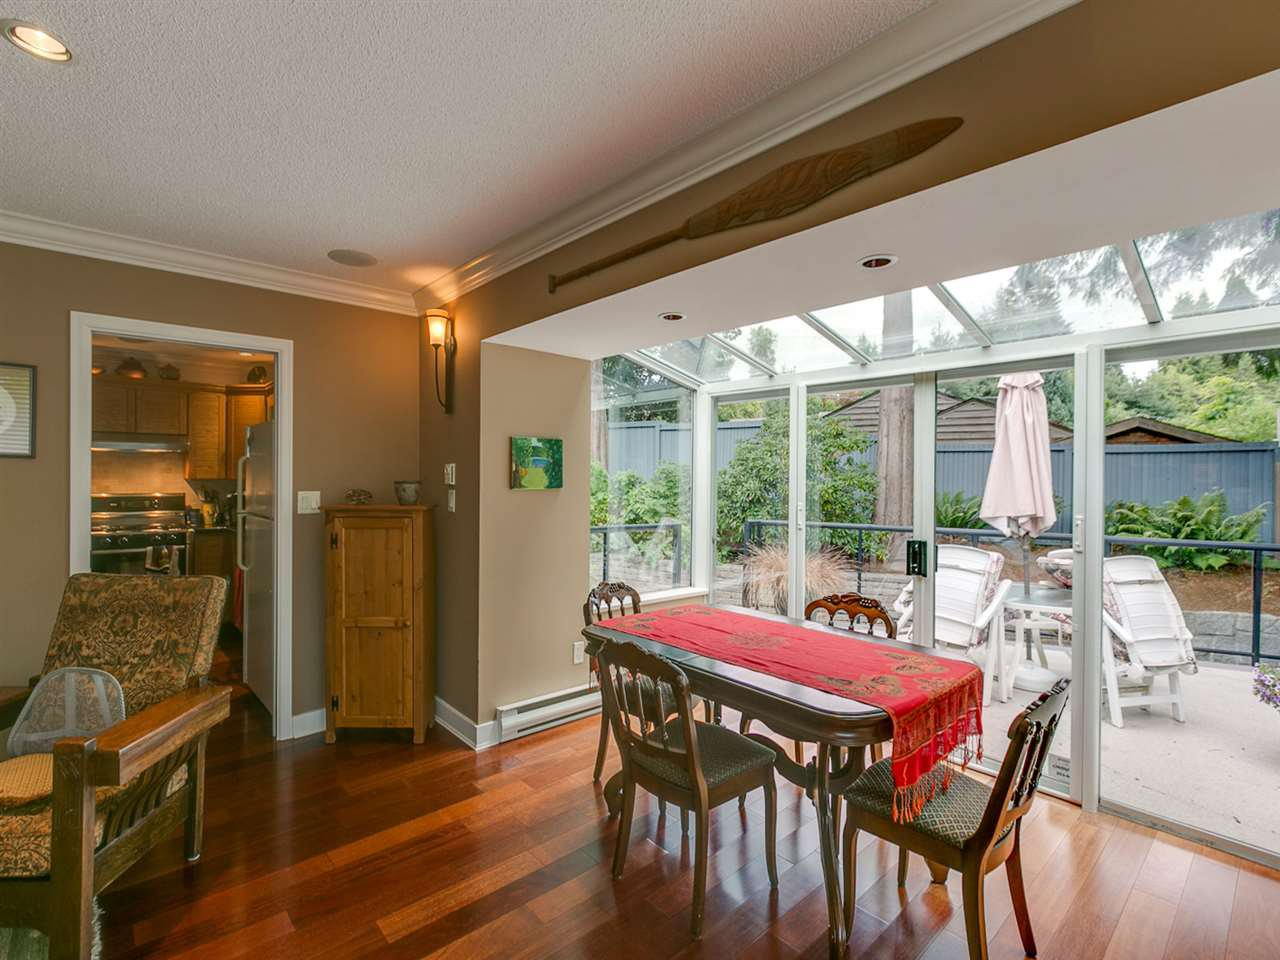 Photo 8: Photos: 1959 ALDERLYNN Drive in North Vancouver: Westlynn House for sale : MLS®# R2094199